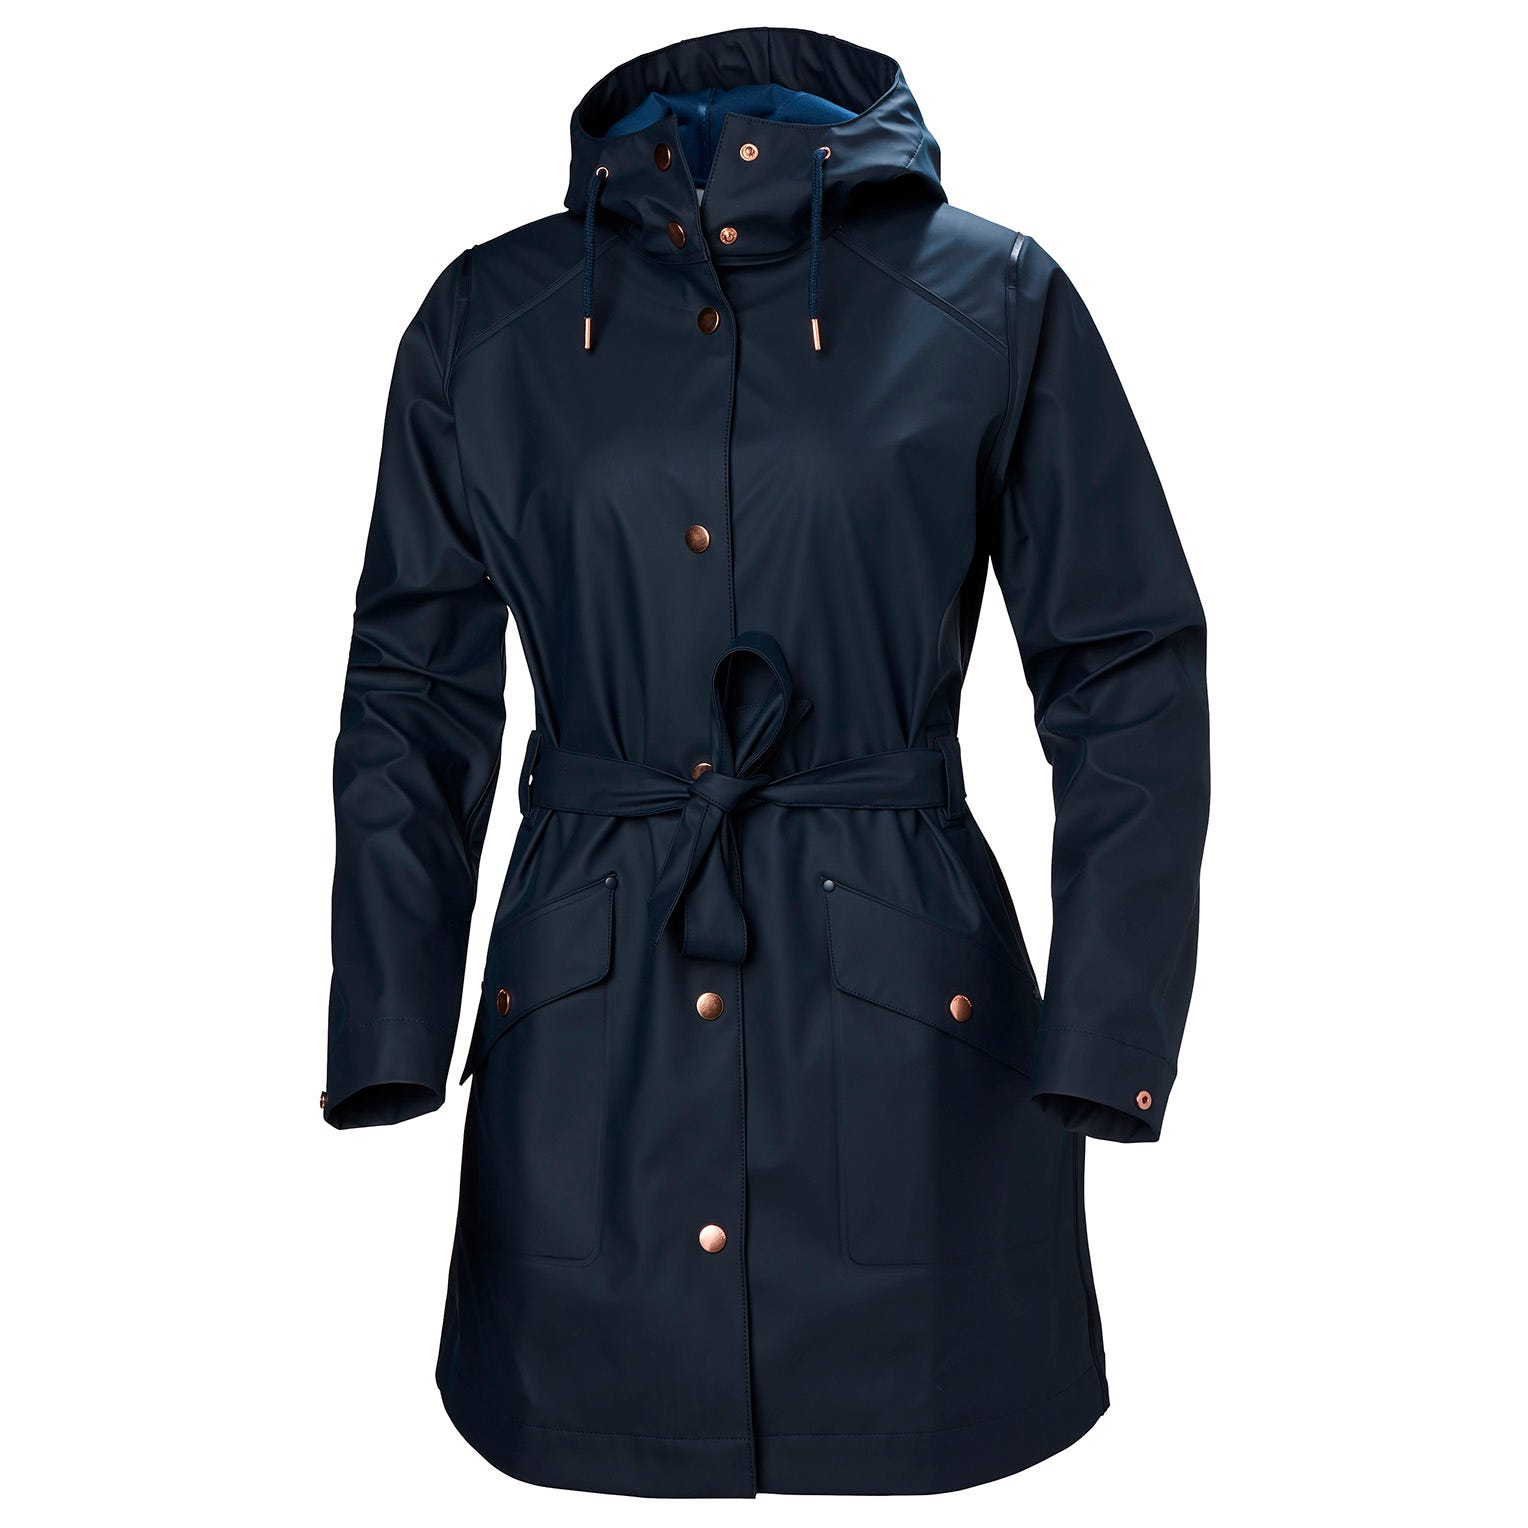 Womens Kirkwall Ii Fully Waterproof Raincoat | Helly Hansen Womens Rain Jacket Navy S